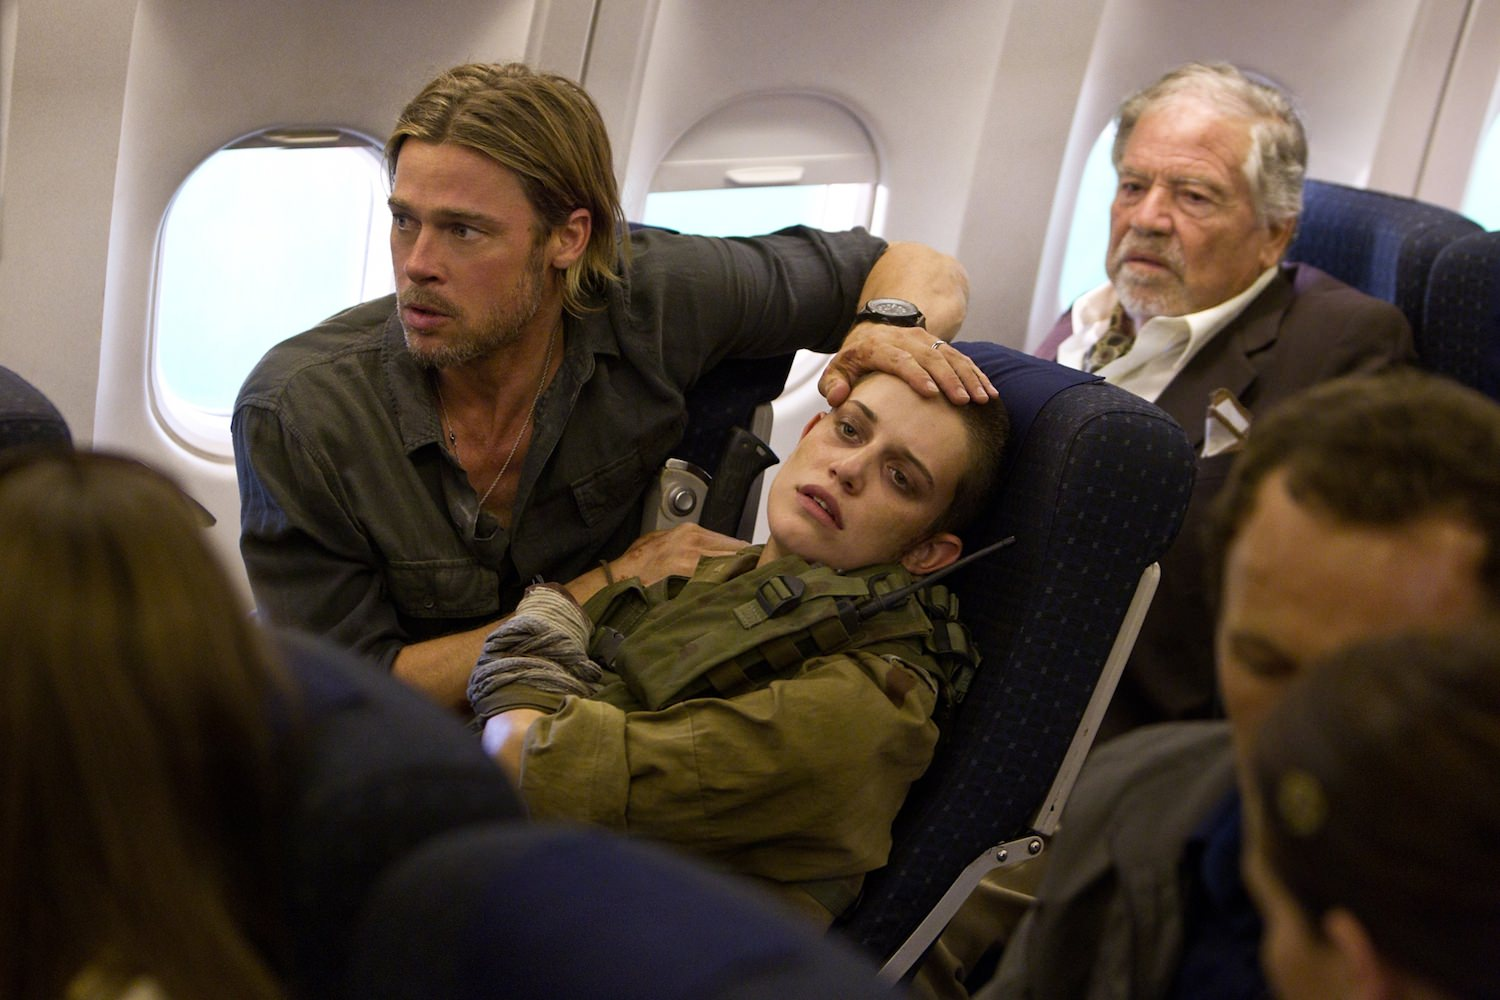 World war z marc foster brad pitt